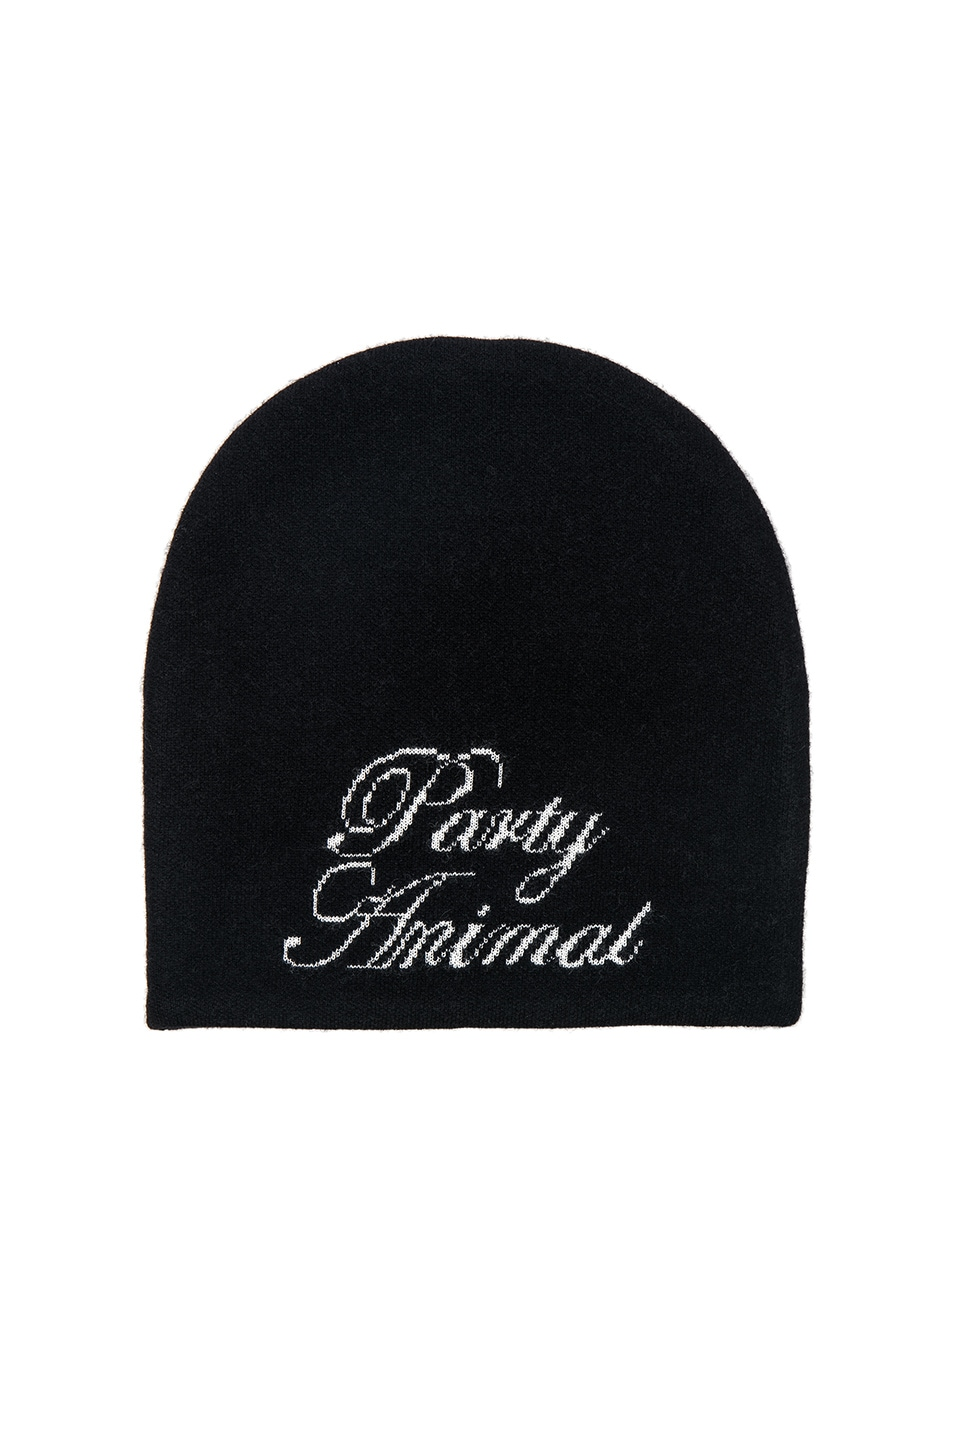 5b901e477ab37 Image 1 of Alexander Wang Party Animal Beanie in Black